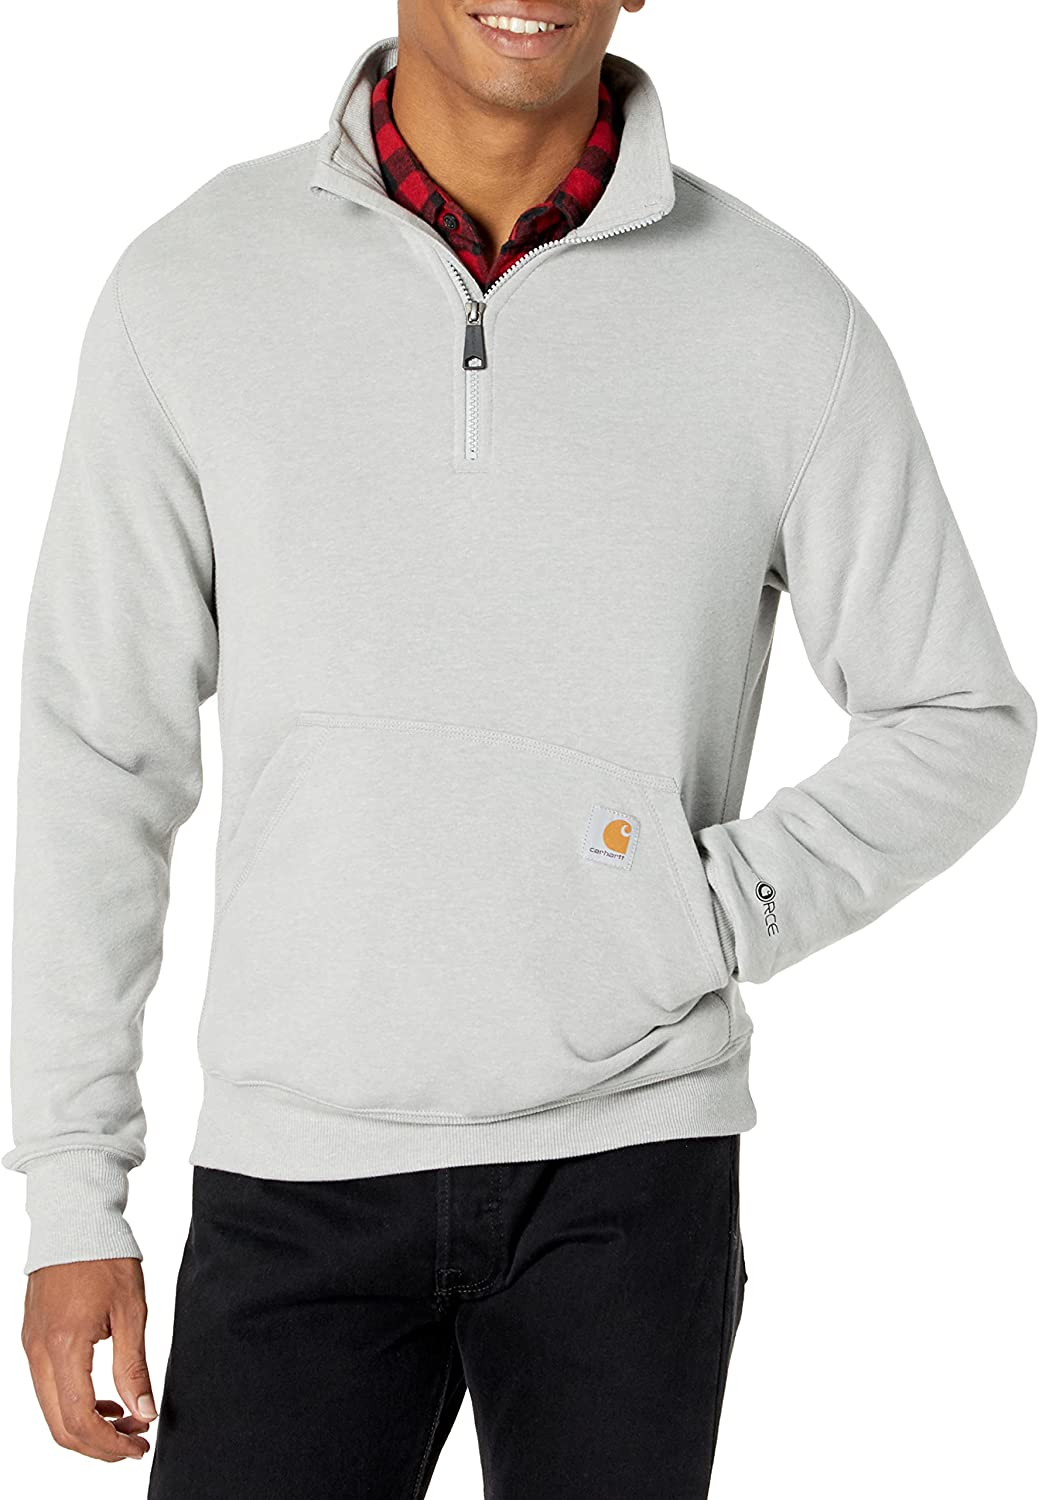 Carhartt Columbus Mall Men's Beauty products Force Relaxed Quarter-Zip Fit Mock-Neck Midweight